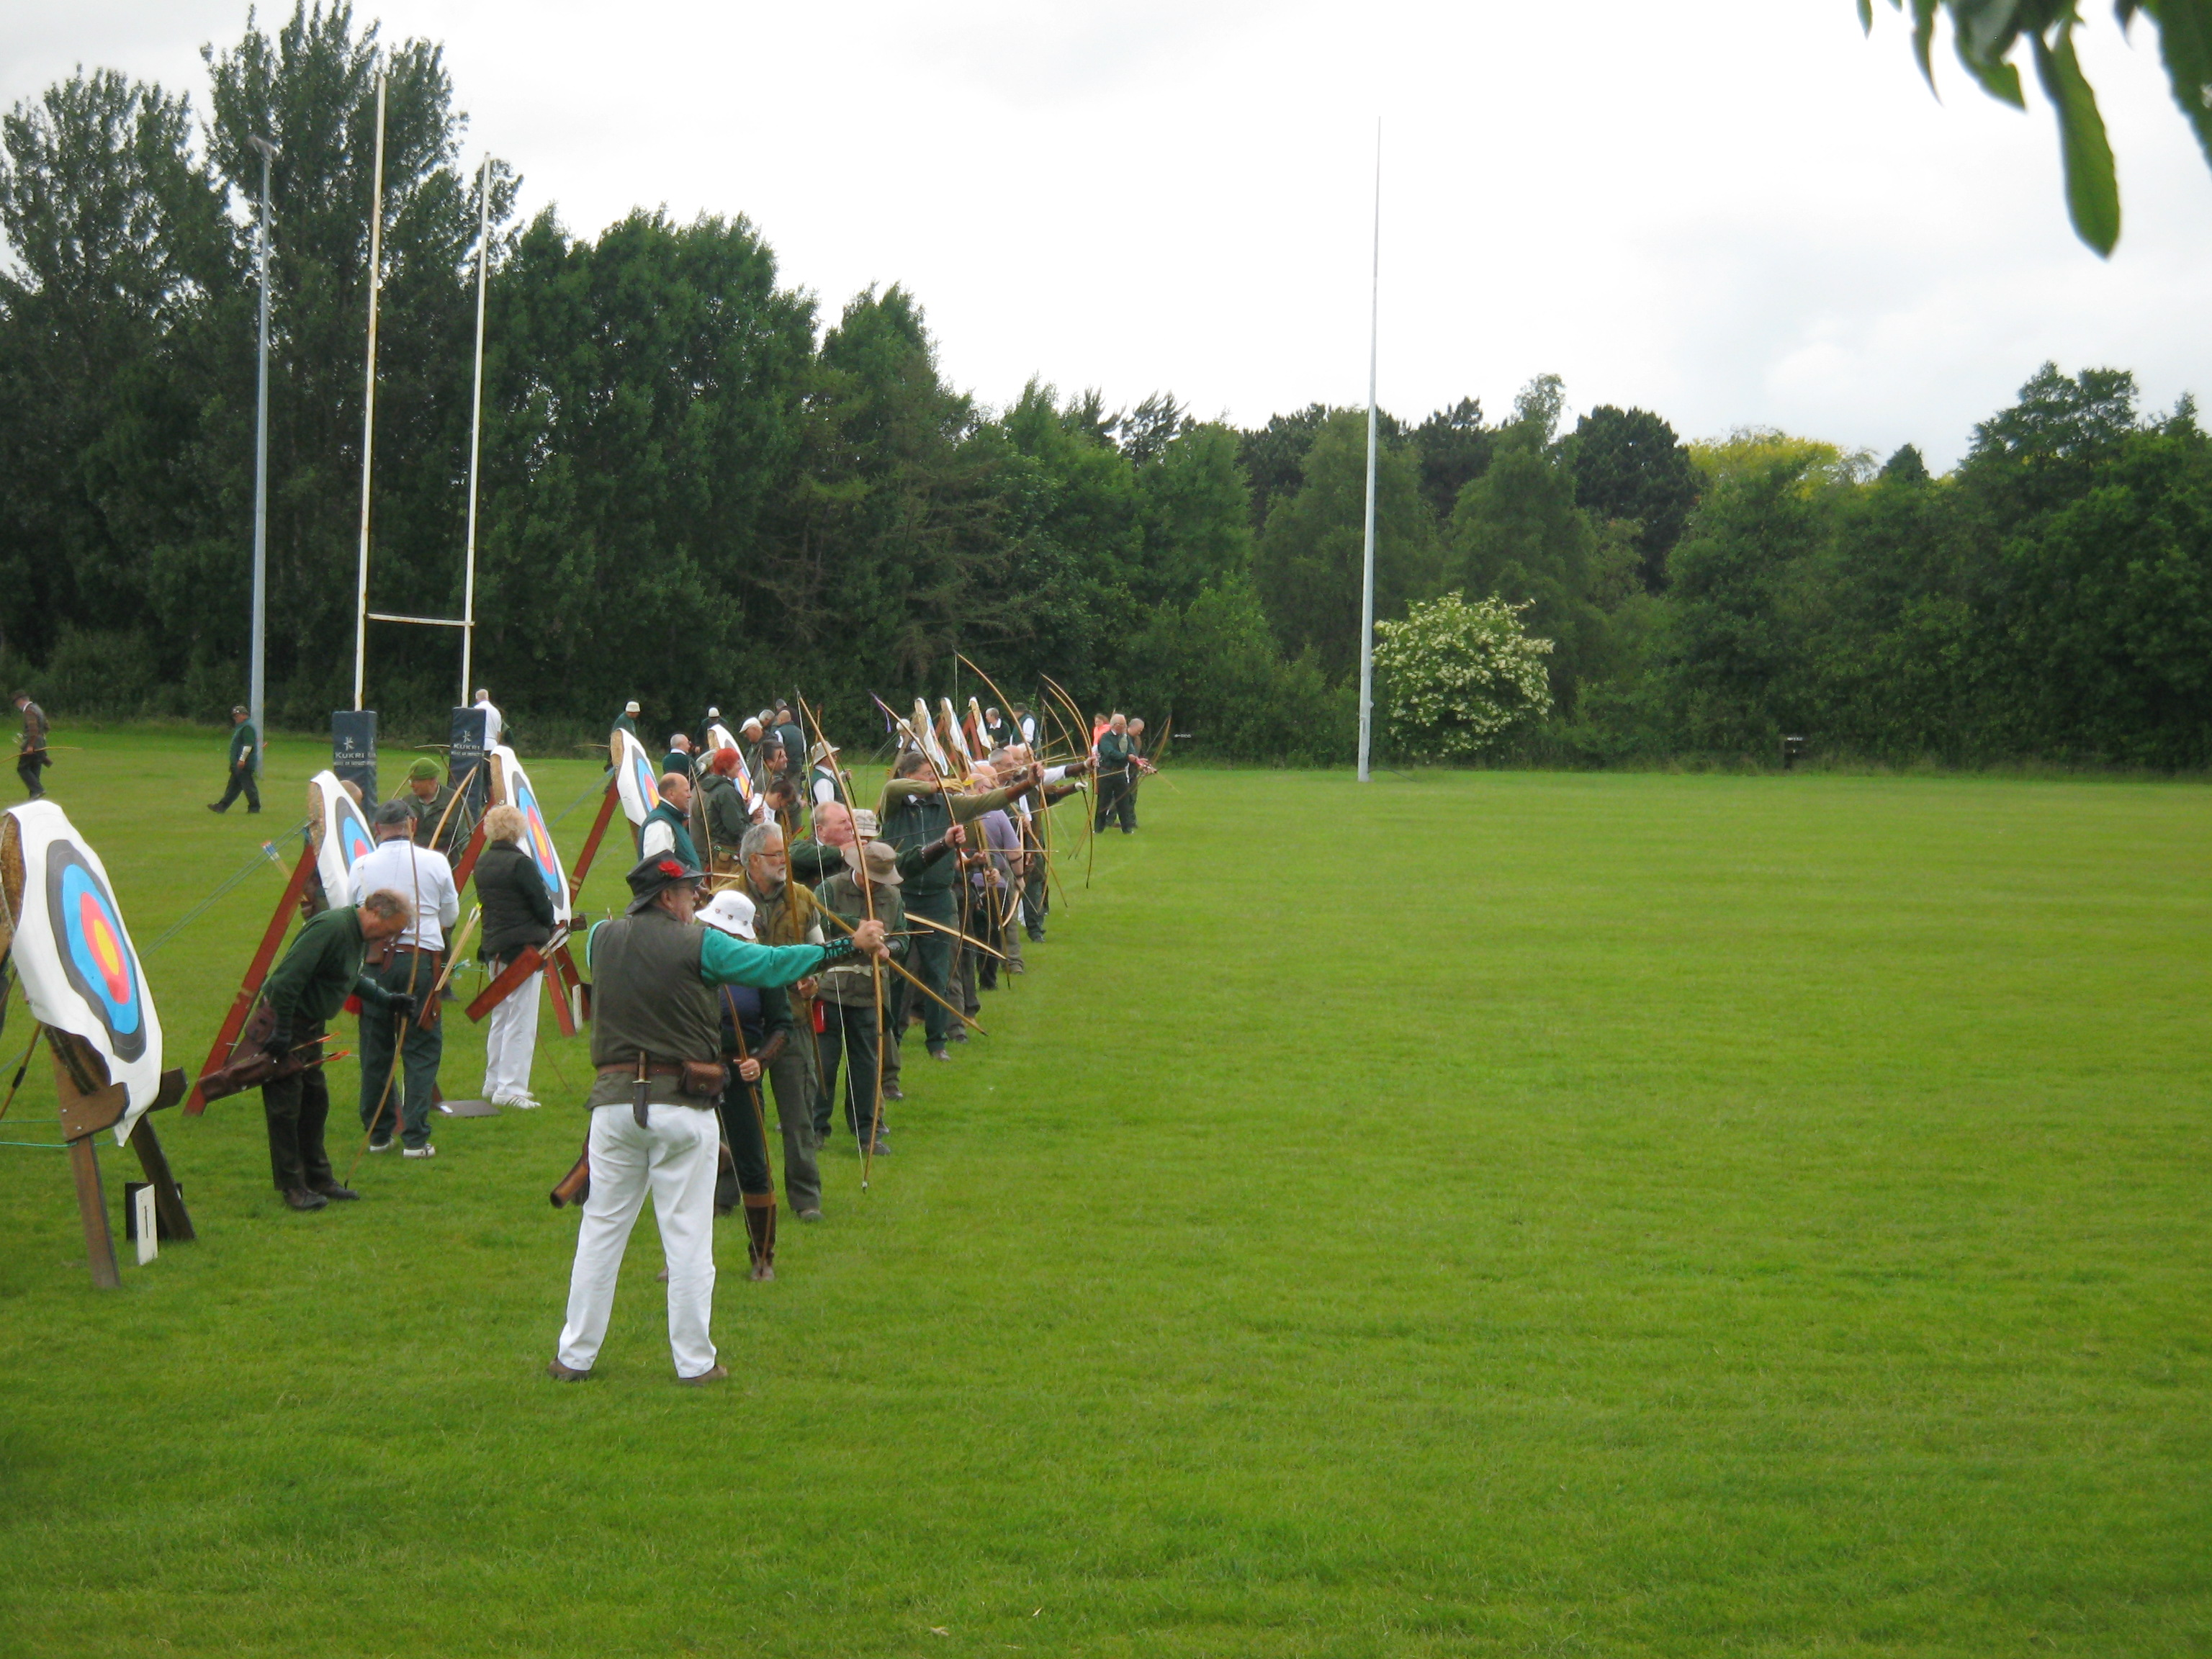 2a2745050 Samlesbury Longbow Archers have been based at Preston Grasshoppers' Rugby  Union Club since November 2004. The Club is a pure longbow club and at  present has ...